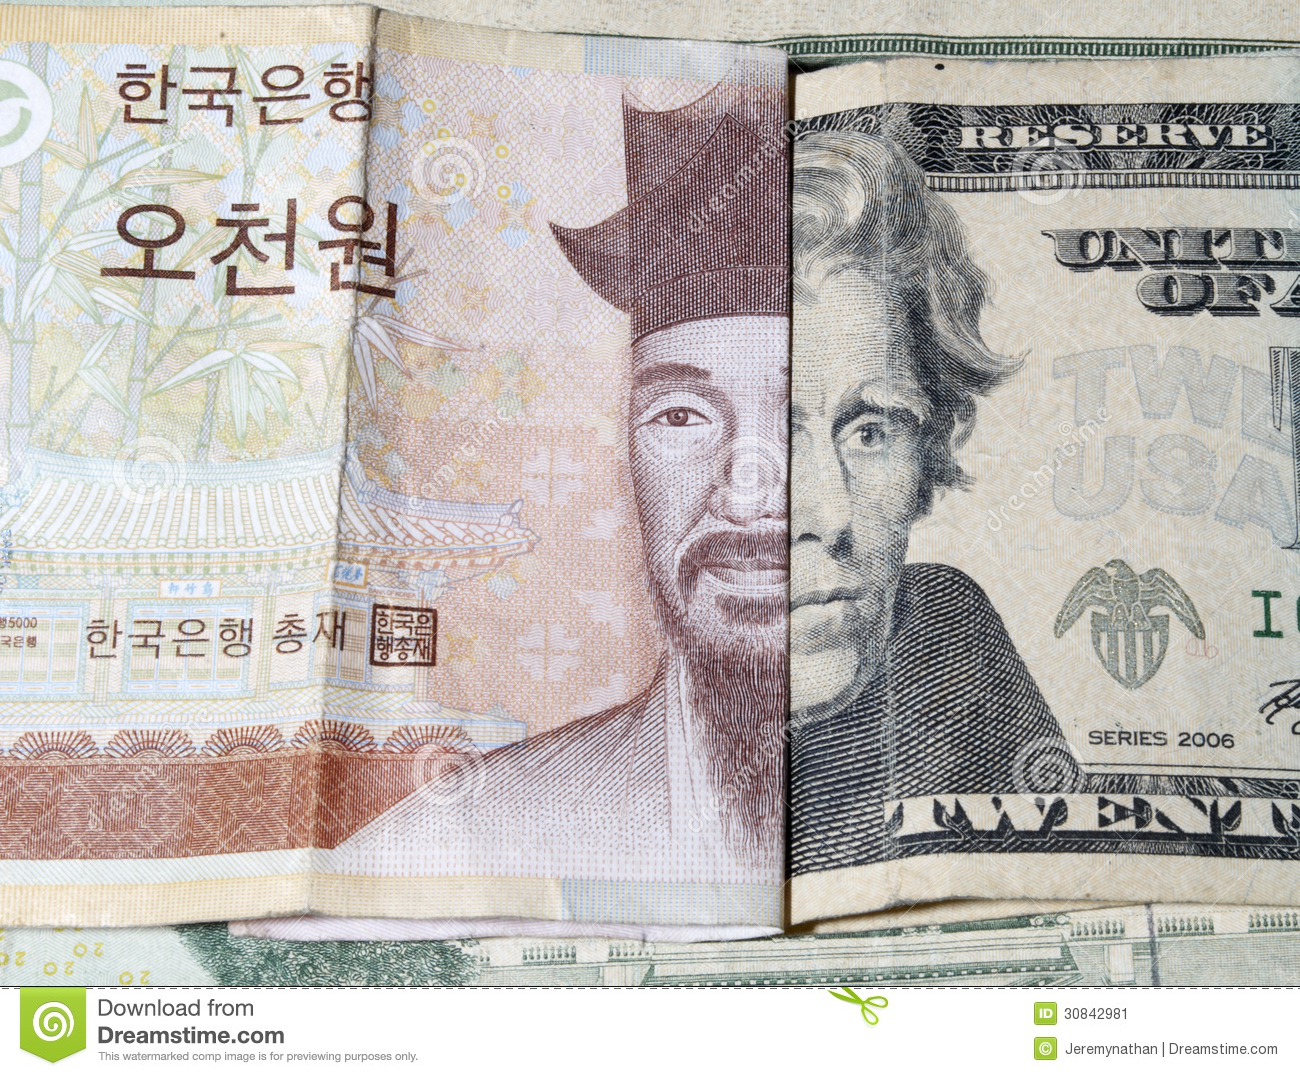 Money Foreign Currency Stock Image - Image: 30842981